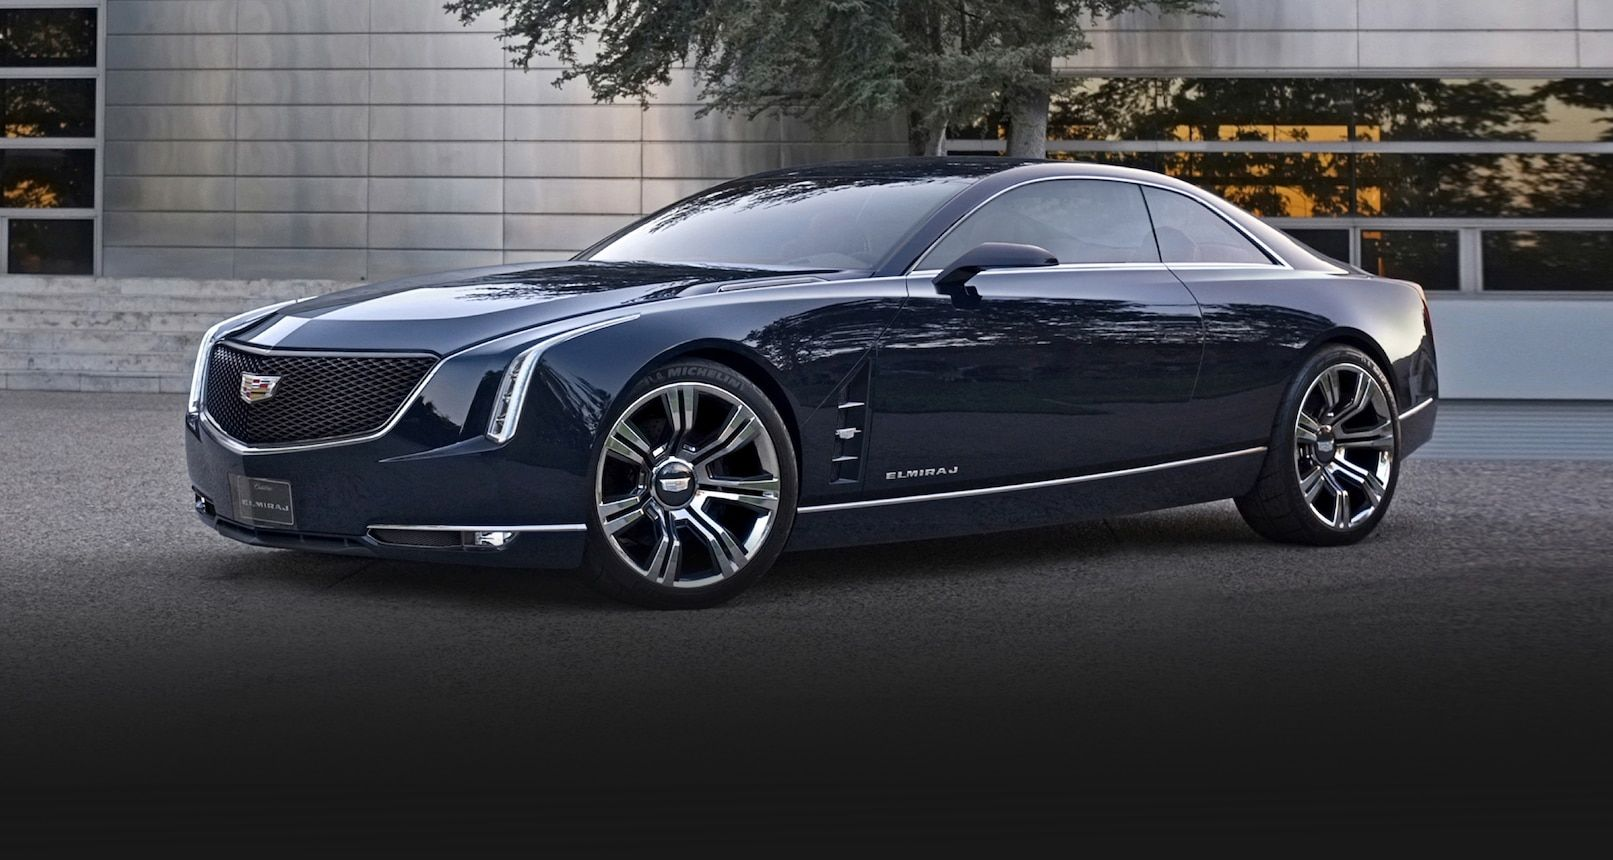 Pin On Cool Cars Concept Vehicles And The Cadillac Elr